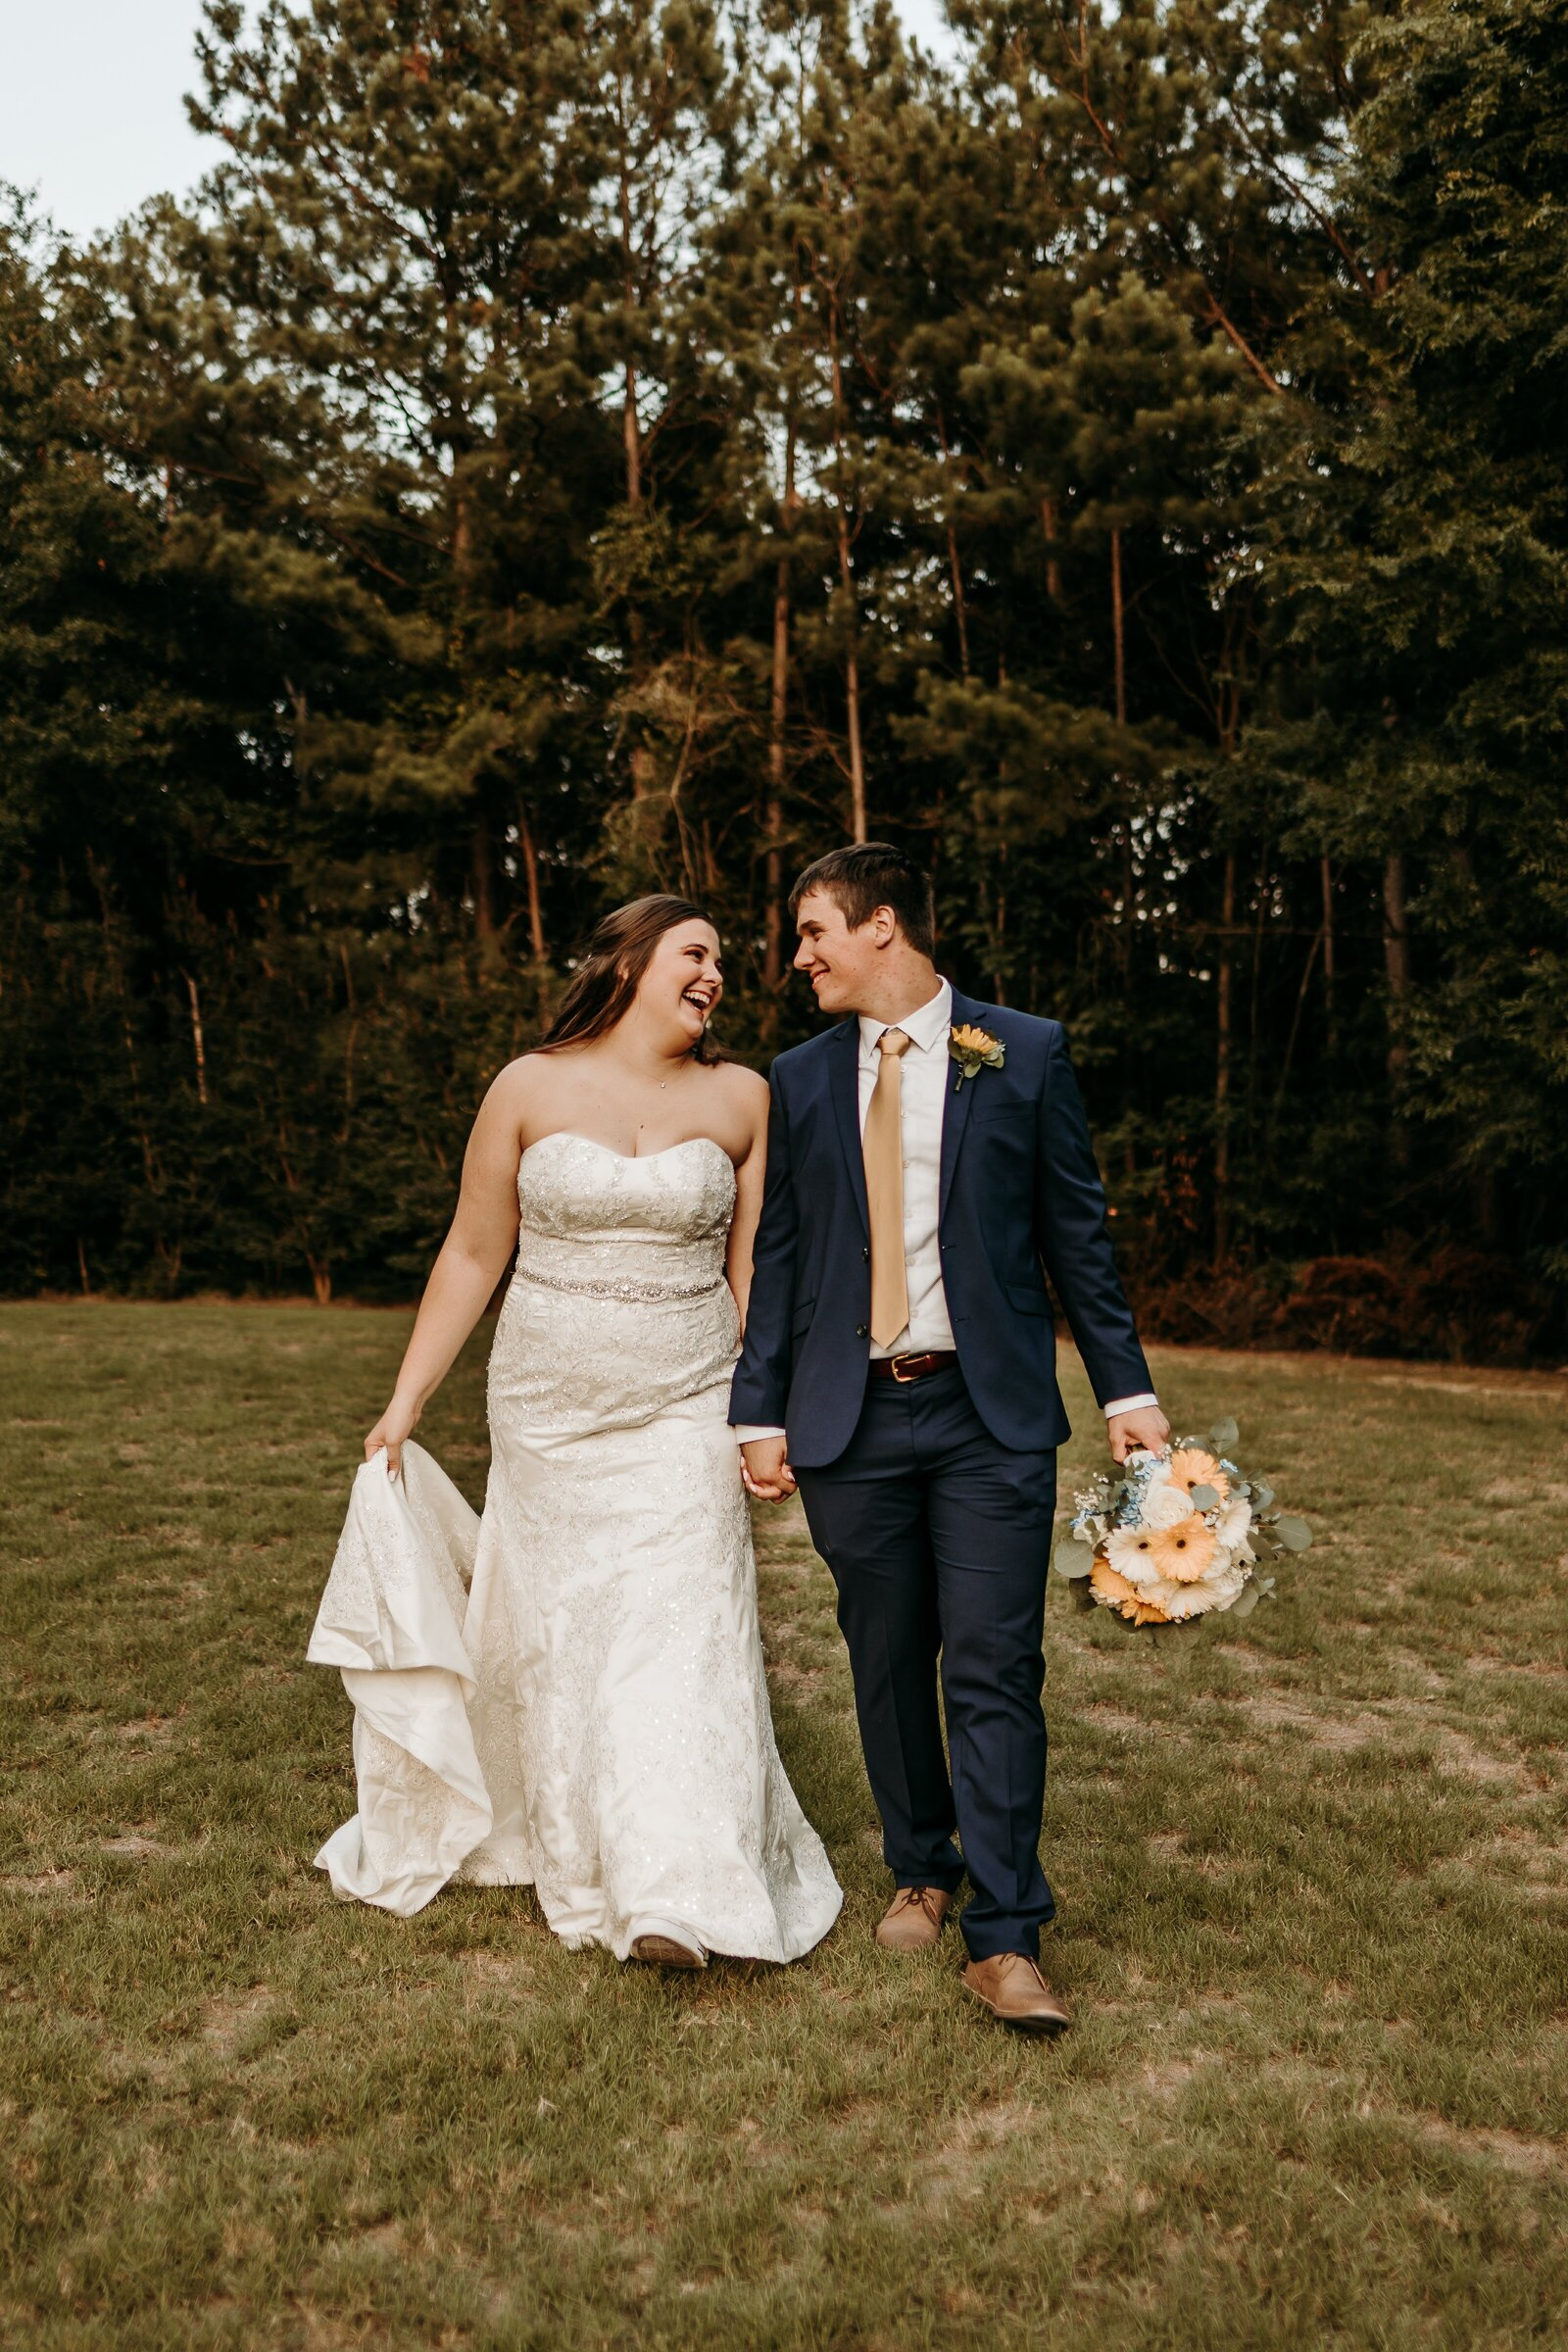 J.Michelle Photography photographs bride and groom walking portrait